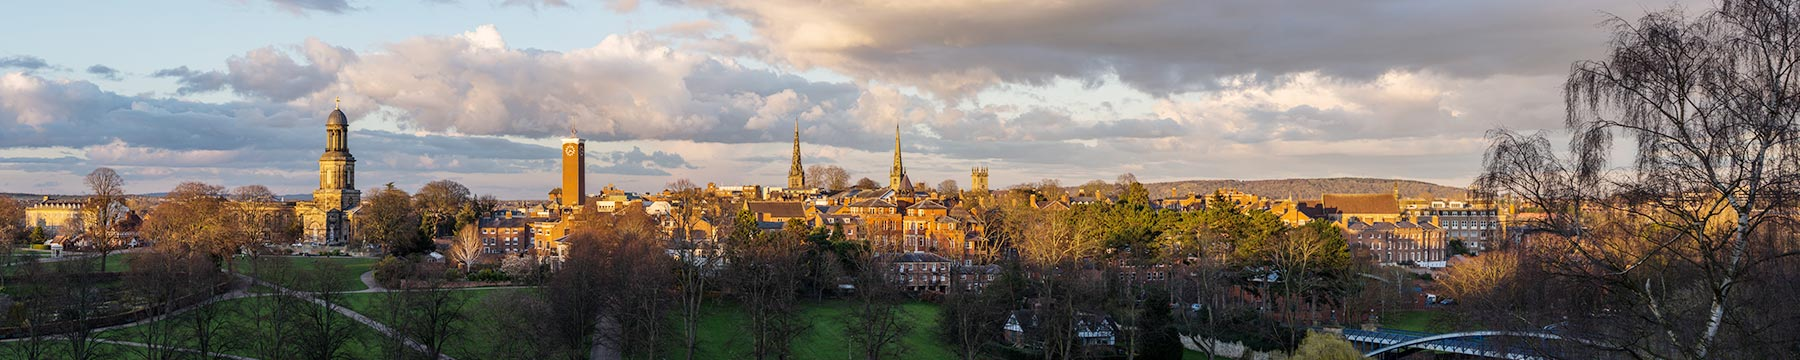 Shrewsbury panorama